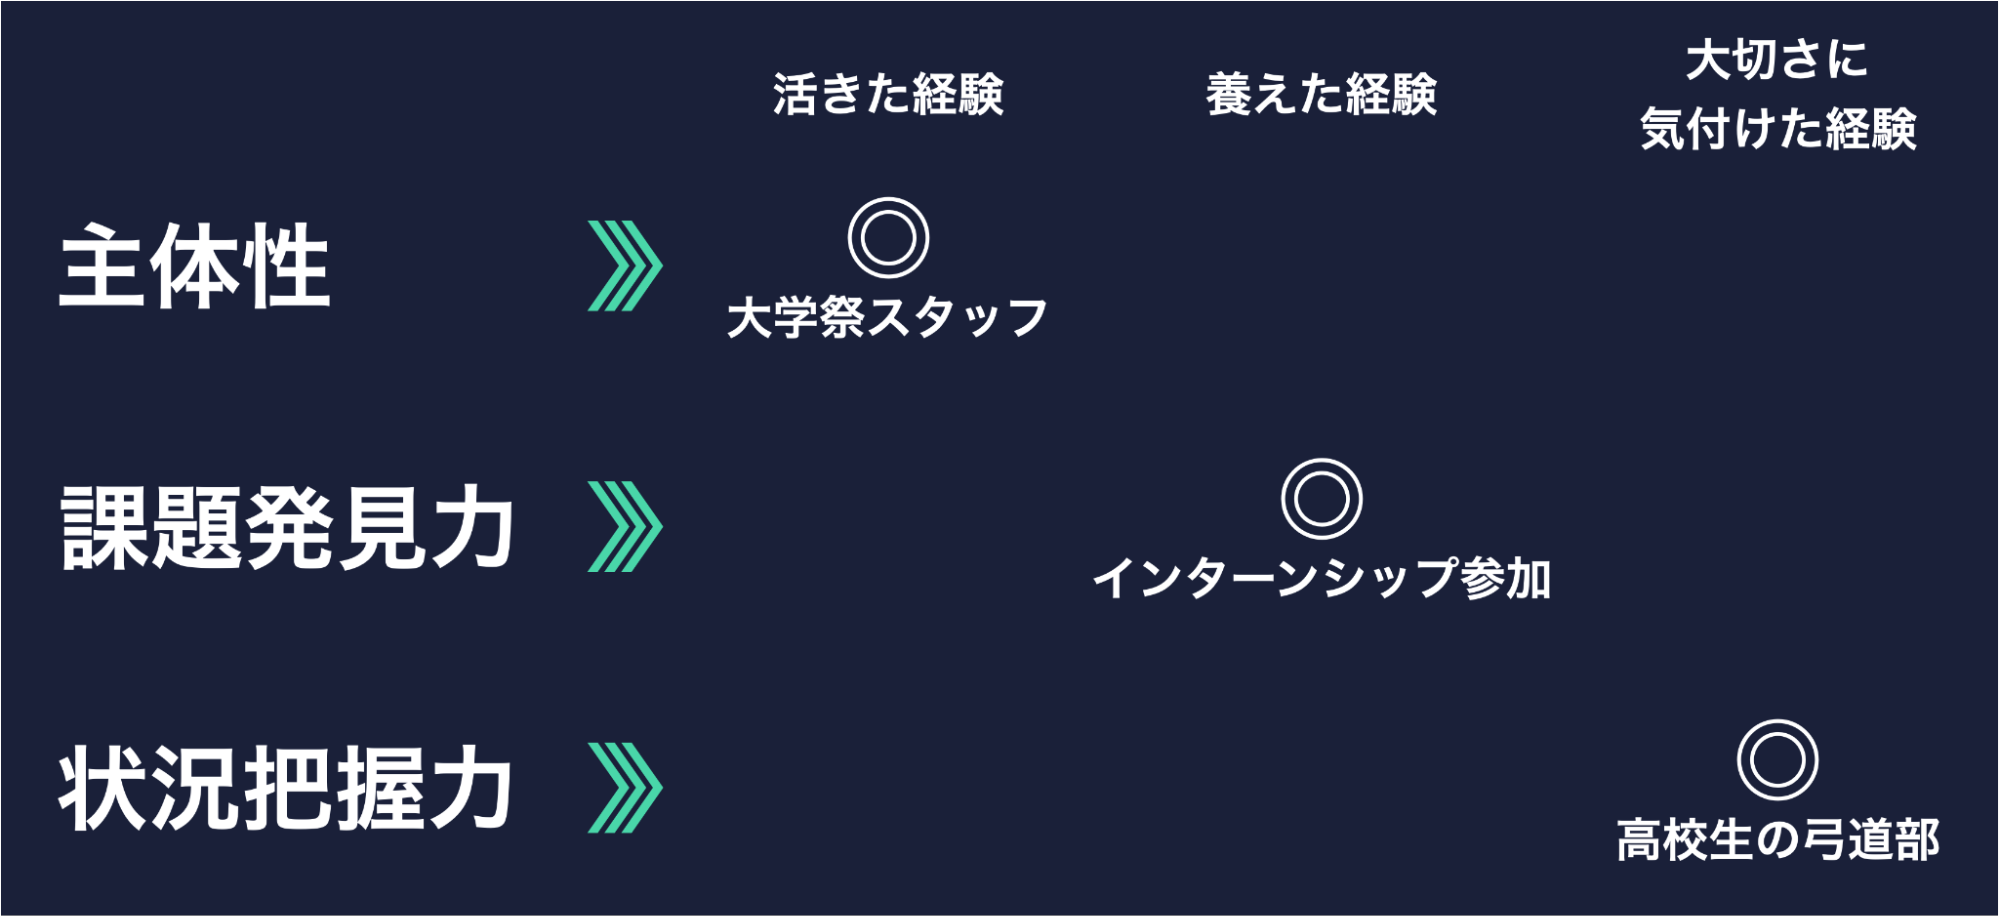 https://offerbox.jp/ofbstudent/wp/wp-content/uploads/2021/05/image6.png